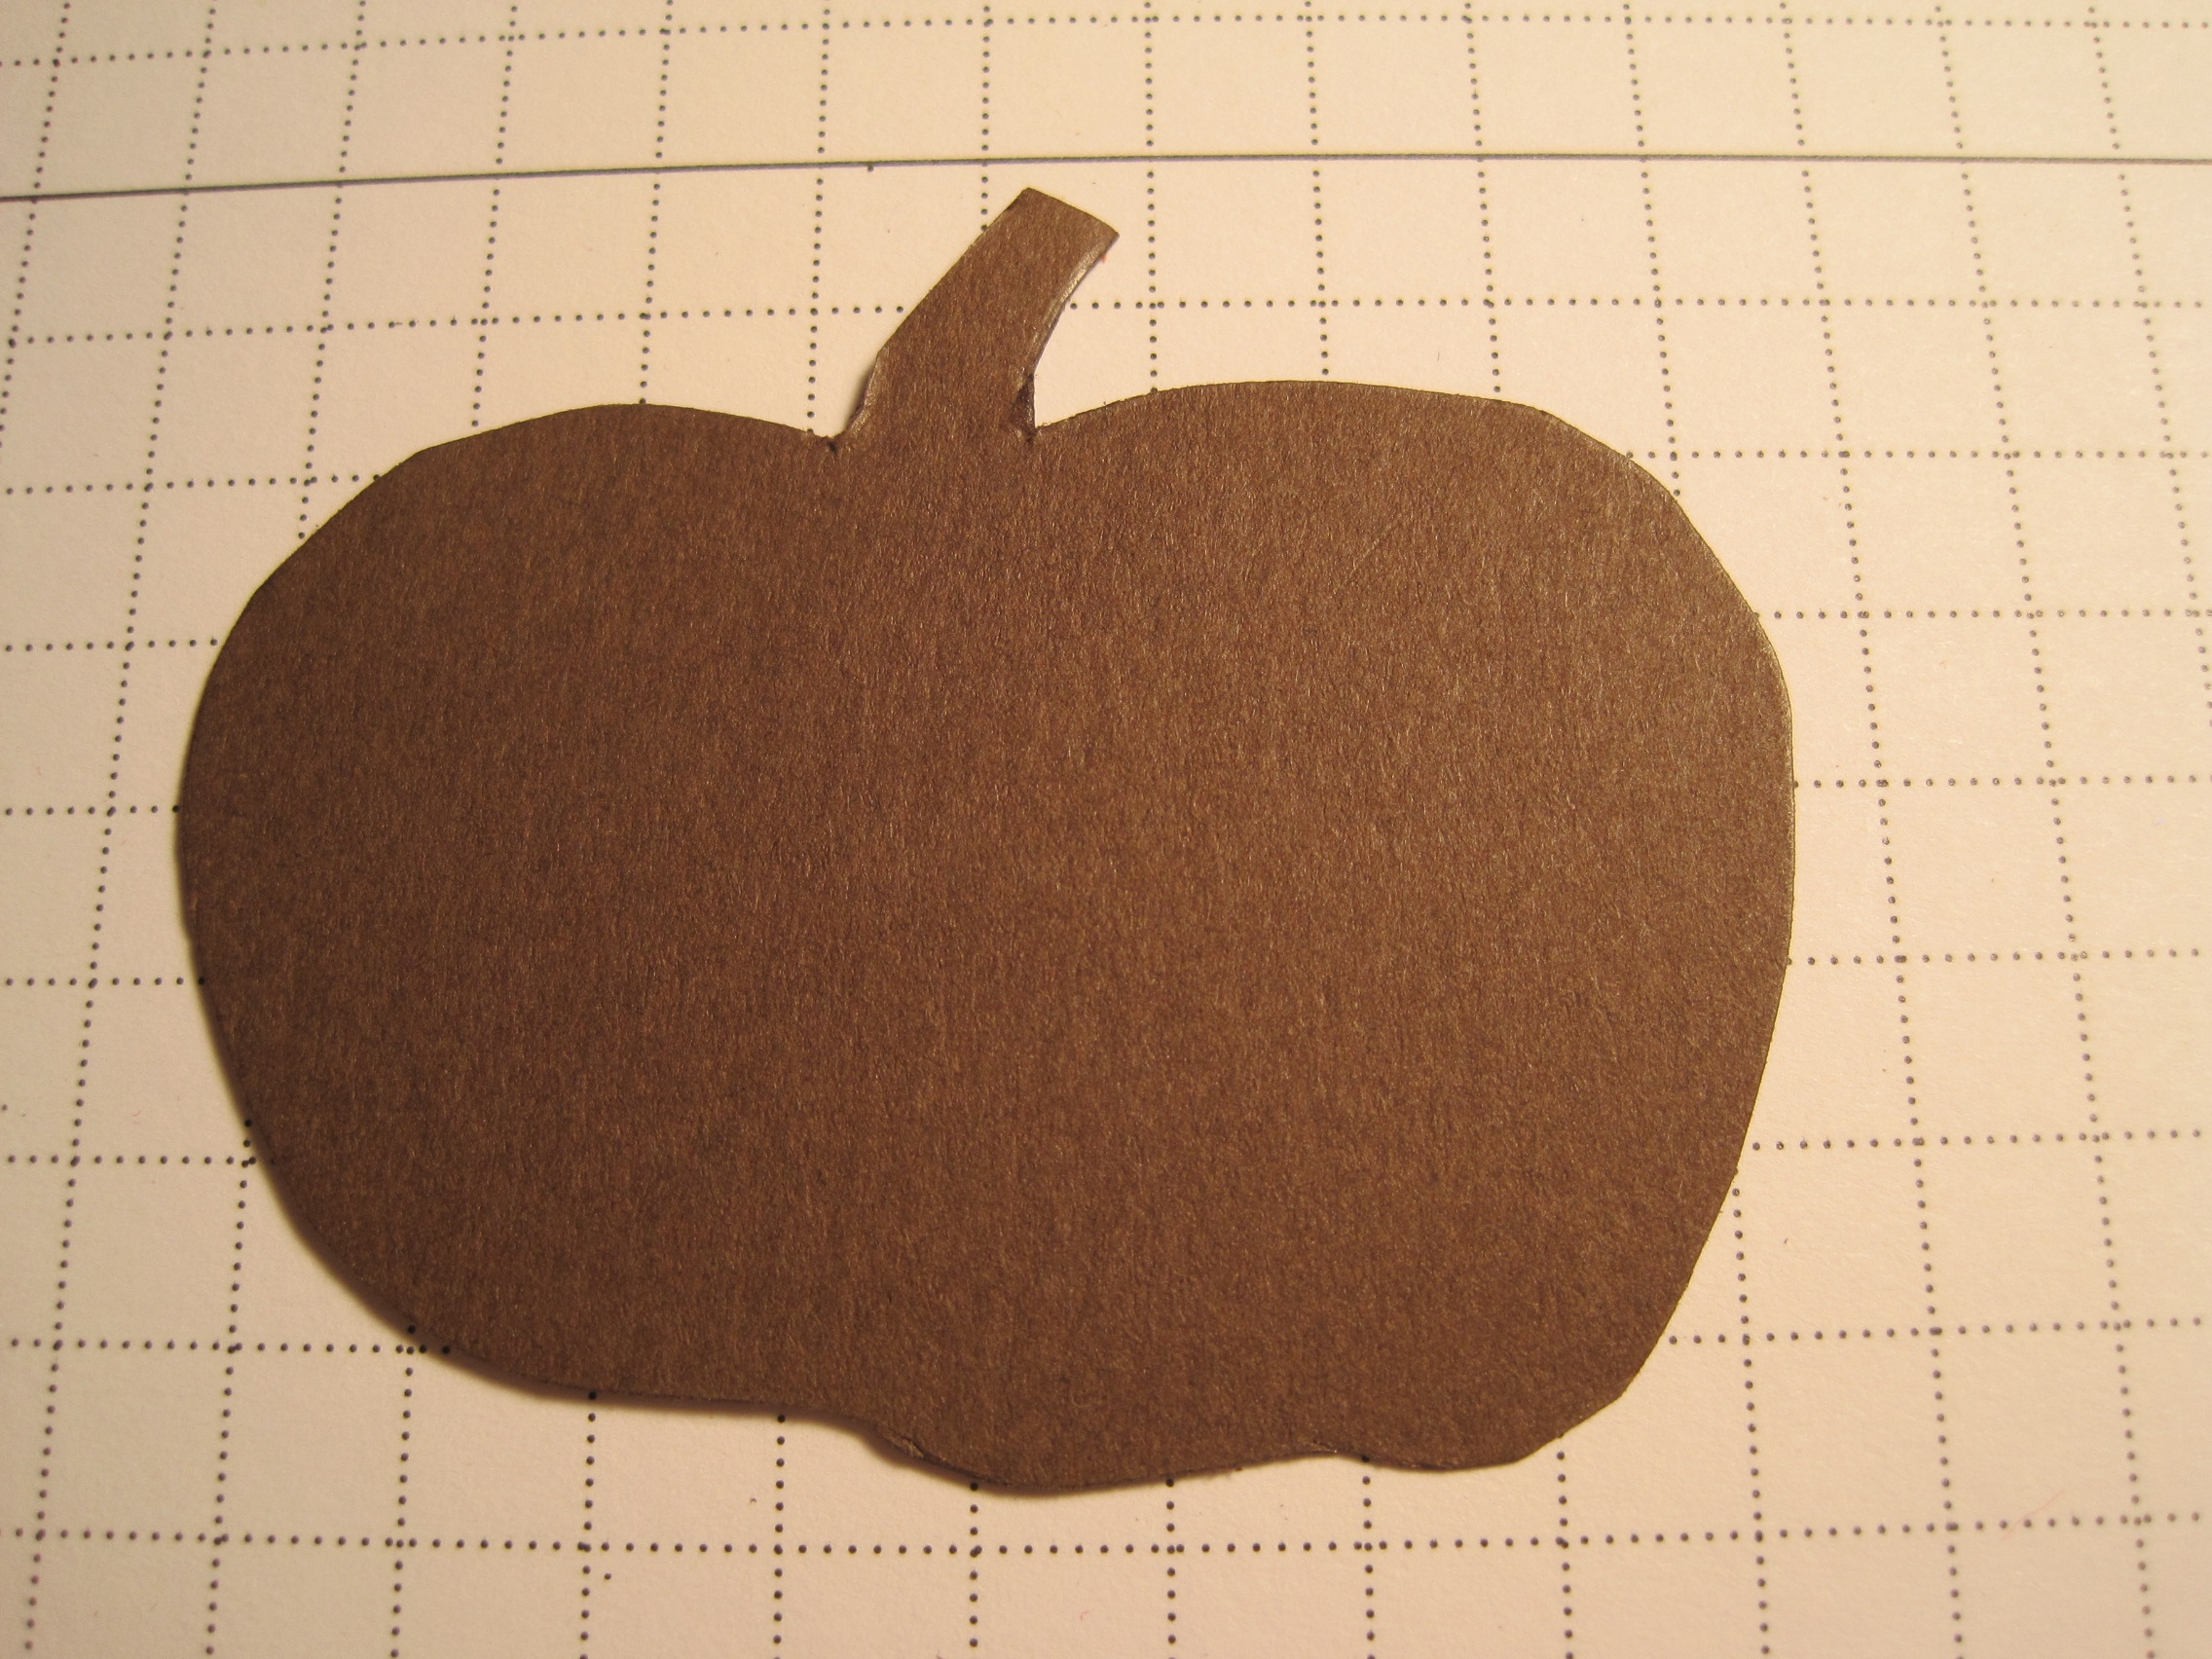 Pumpkin pin made with copper foil tape dianne faw